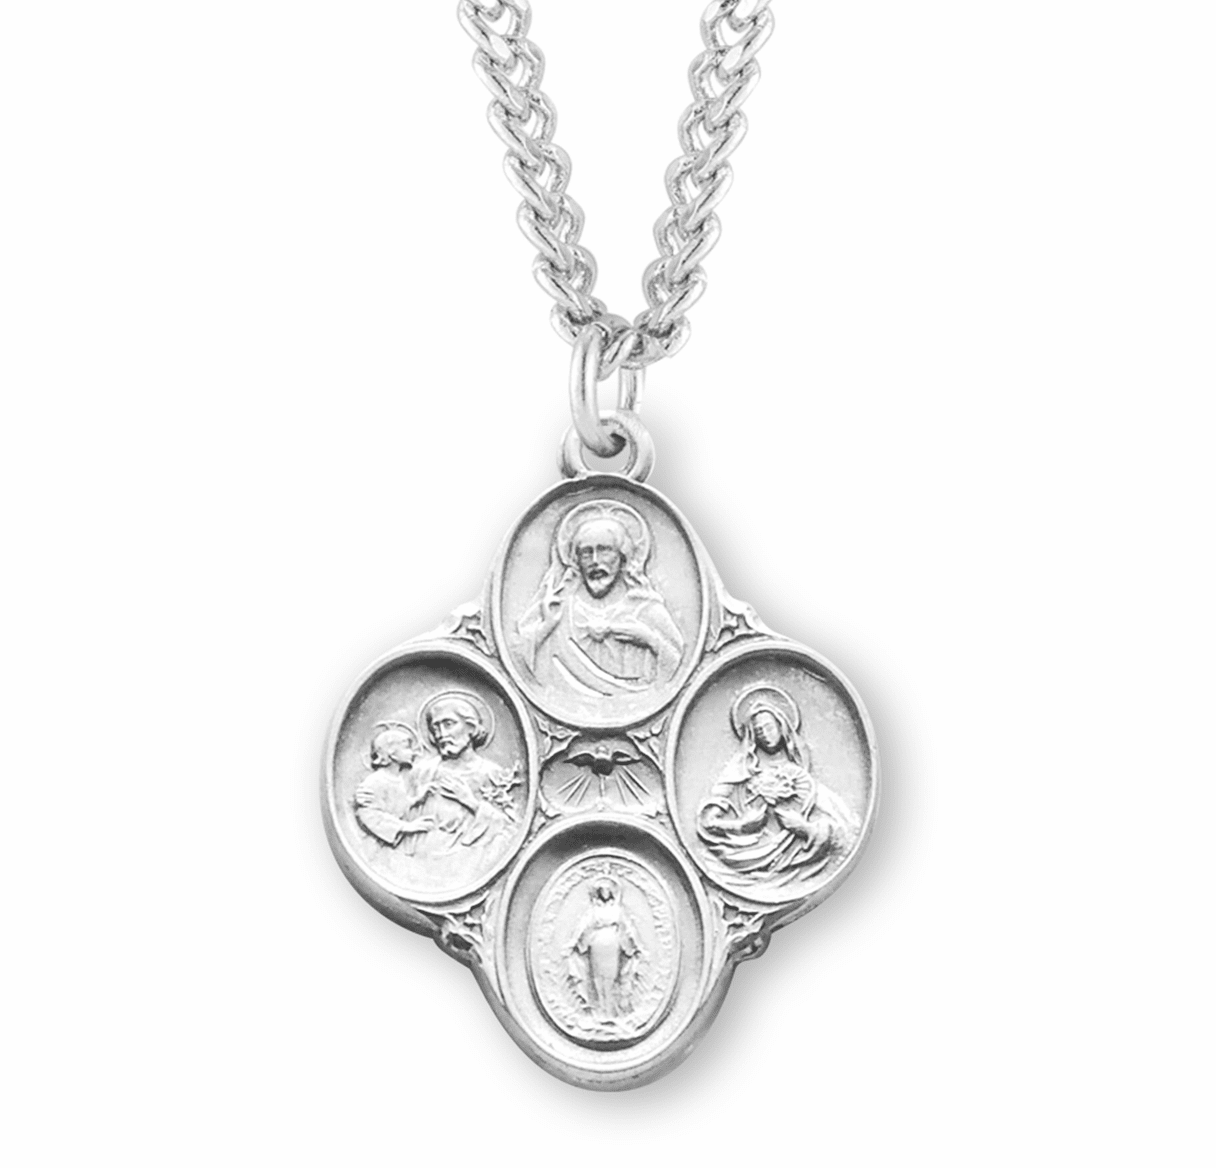 Catholic Sterling Silver Four-Way Medal Necklace by HMH Religious